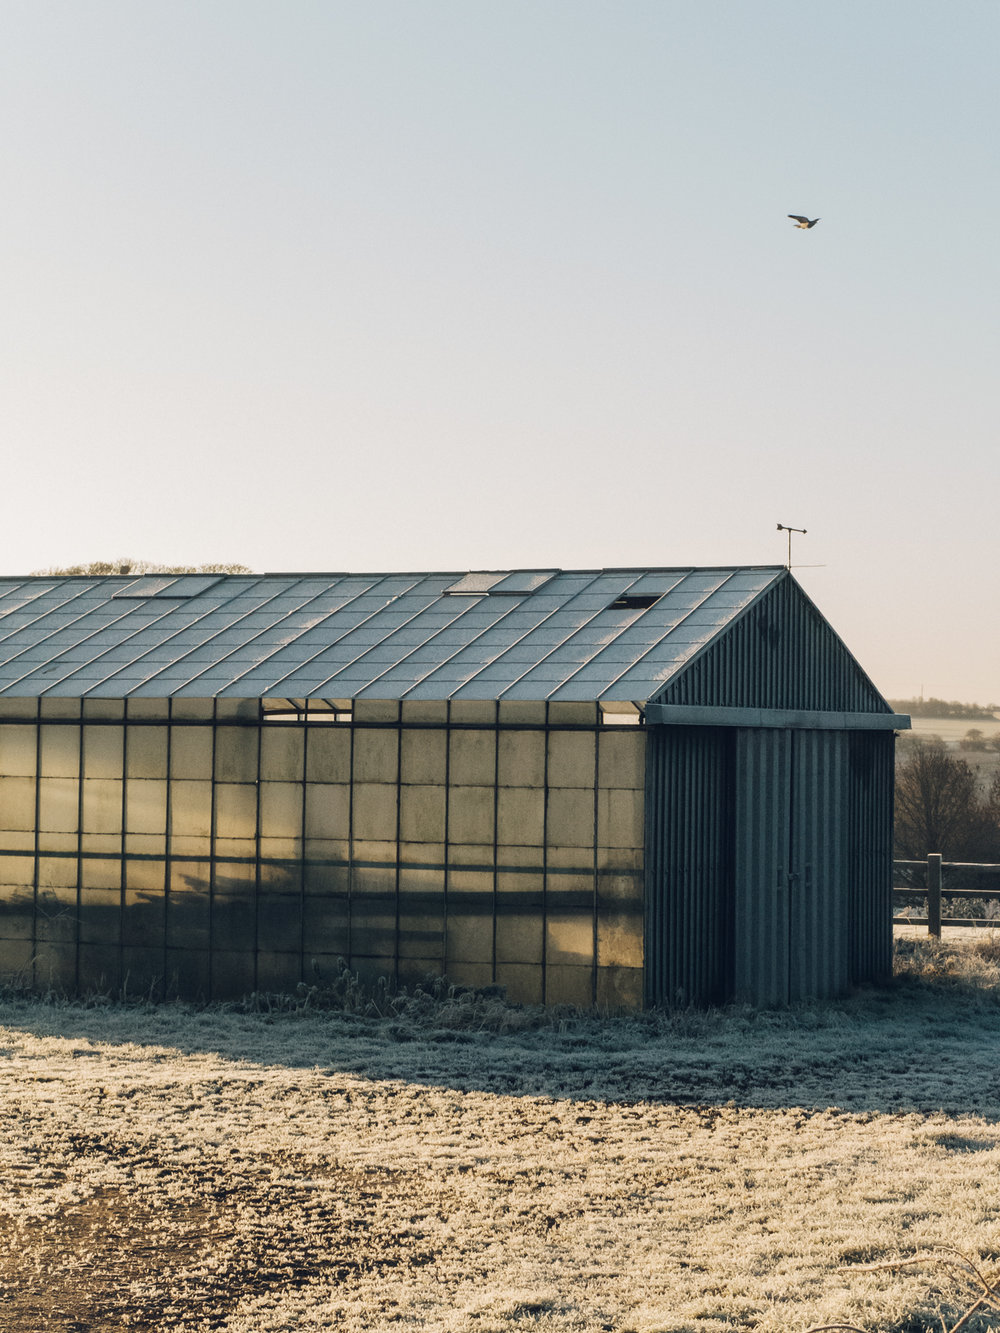 Frozen greenhouse in the Winter sunshine.